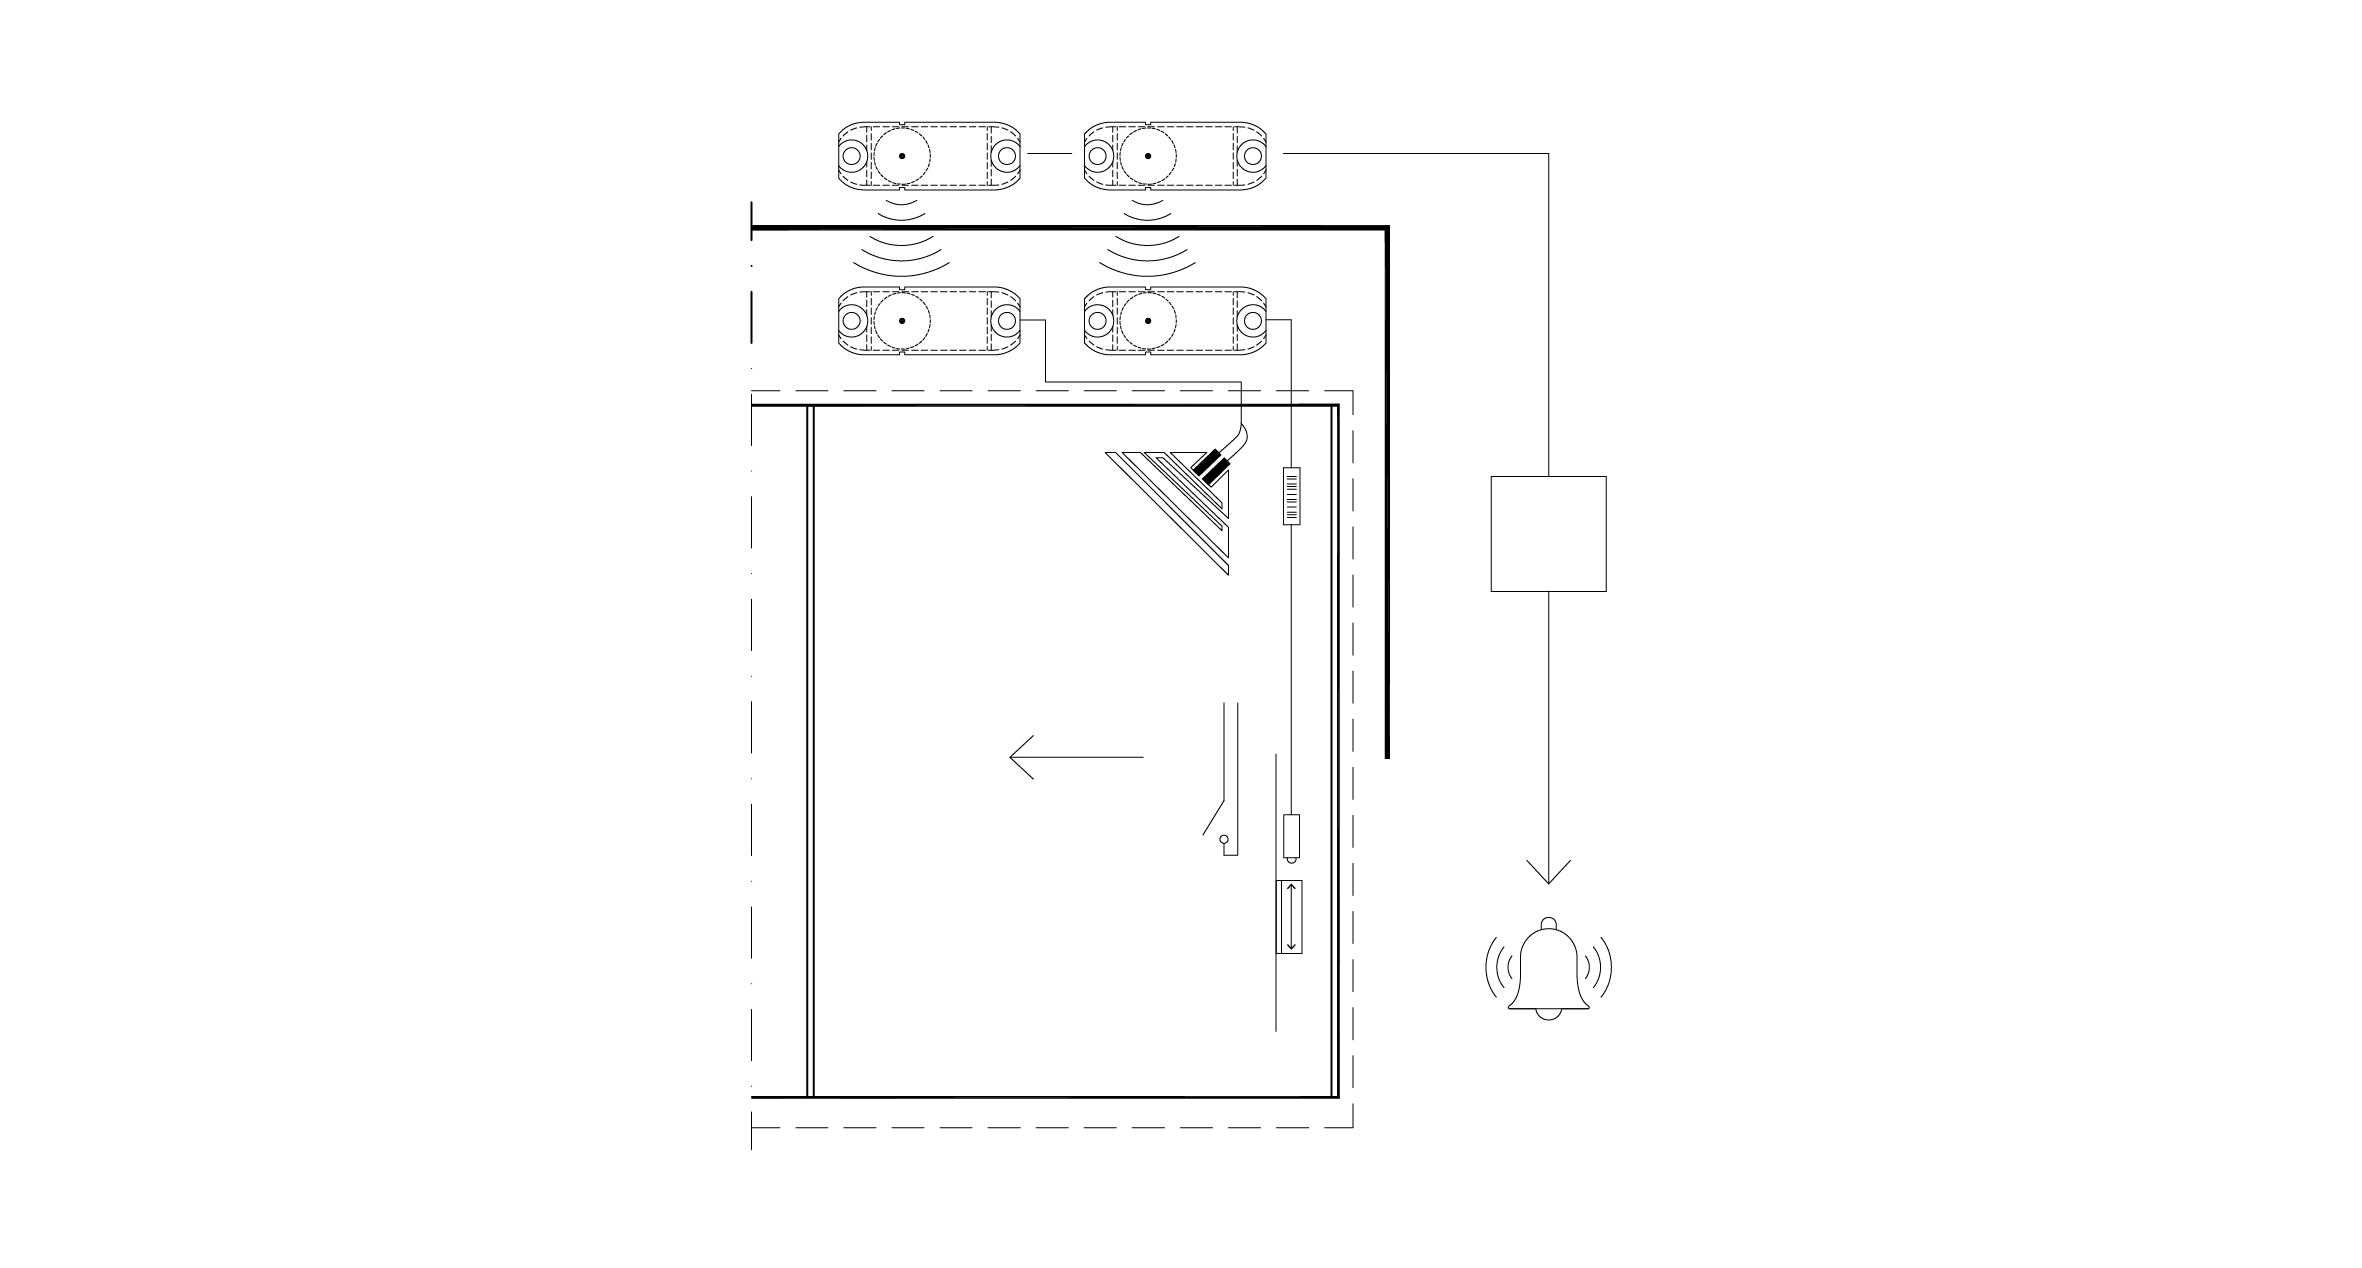 Technical Drawing Sky Frame Guard.png 2362x1268 Q90 Subsampling 2